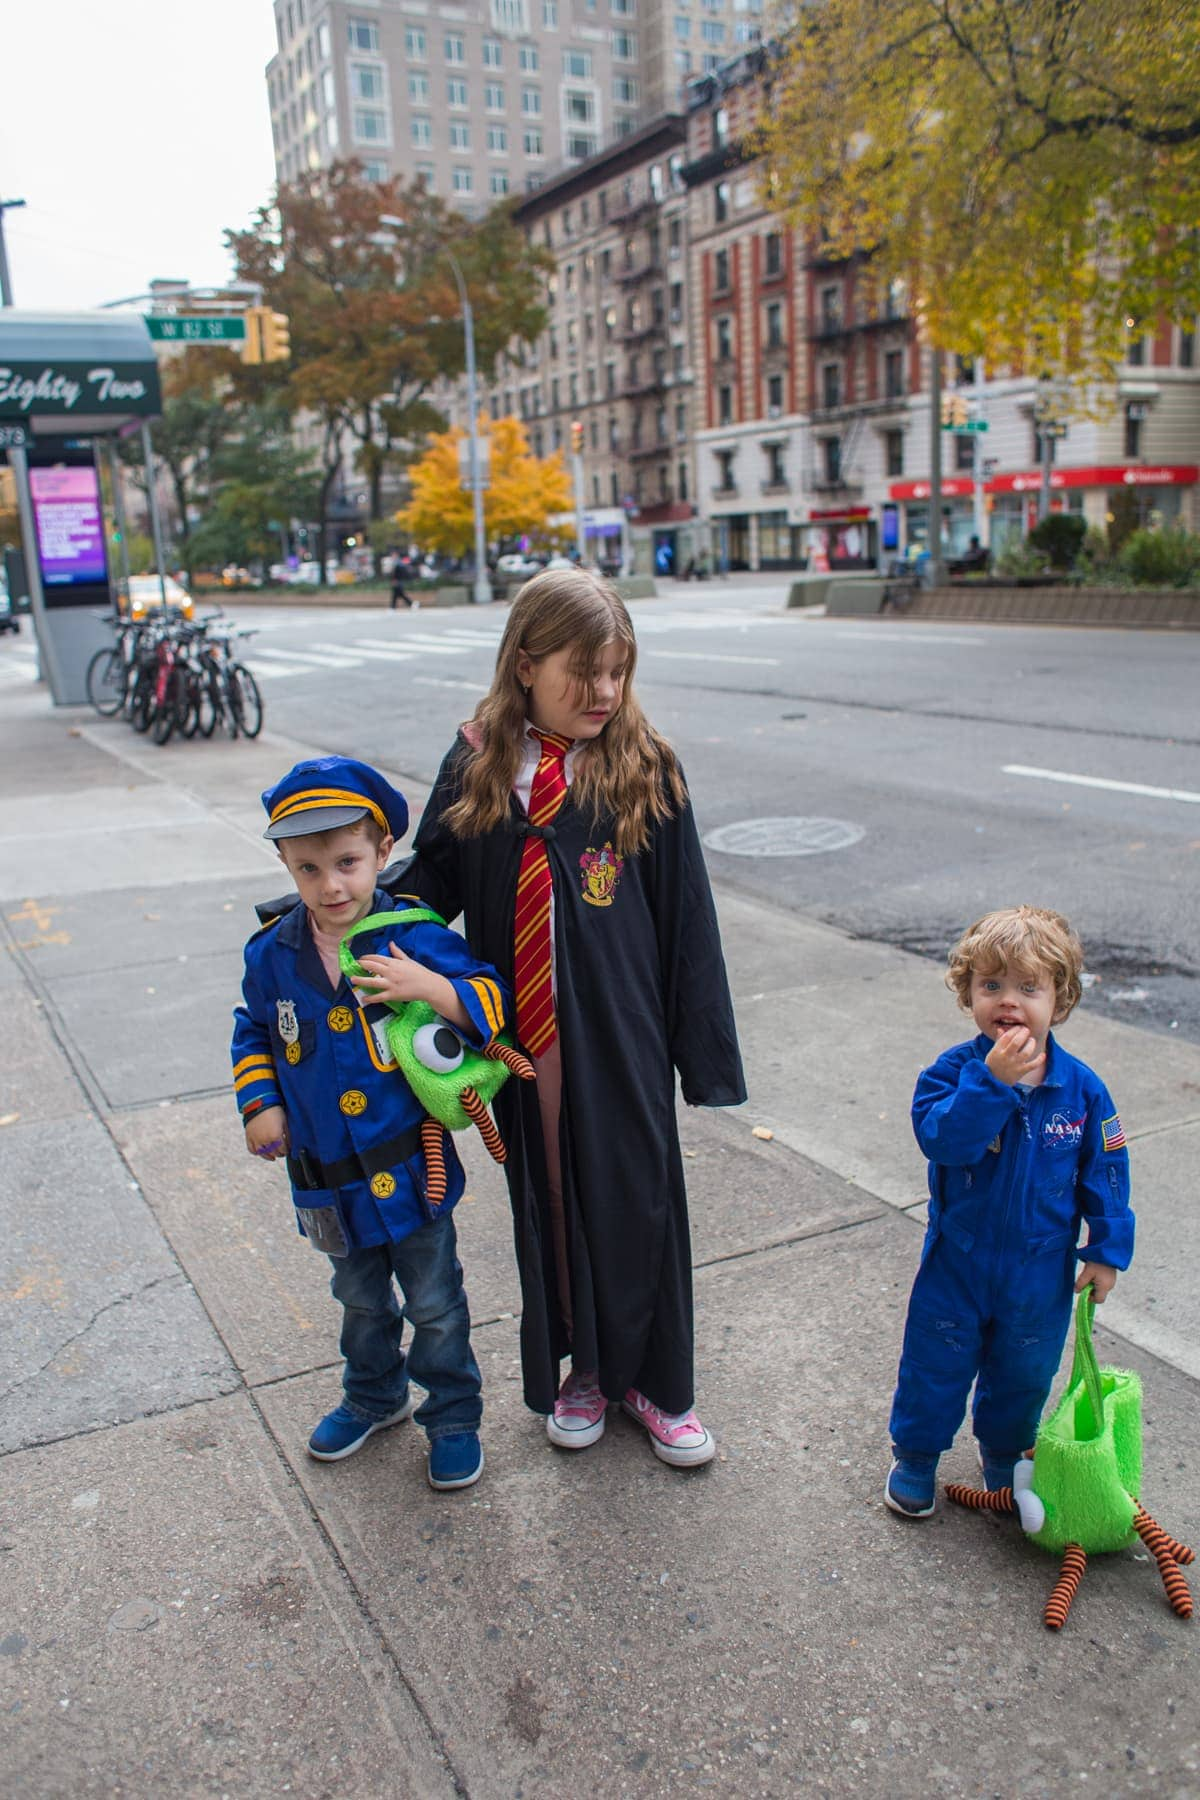 The kids dressed for Halloween on the sidewalk